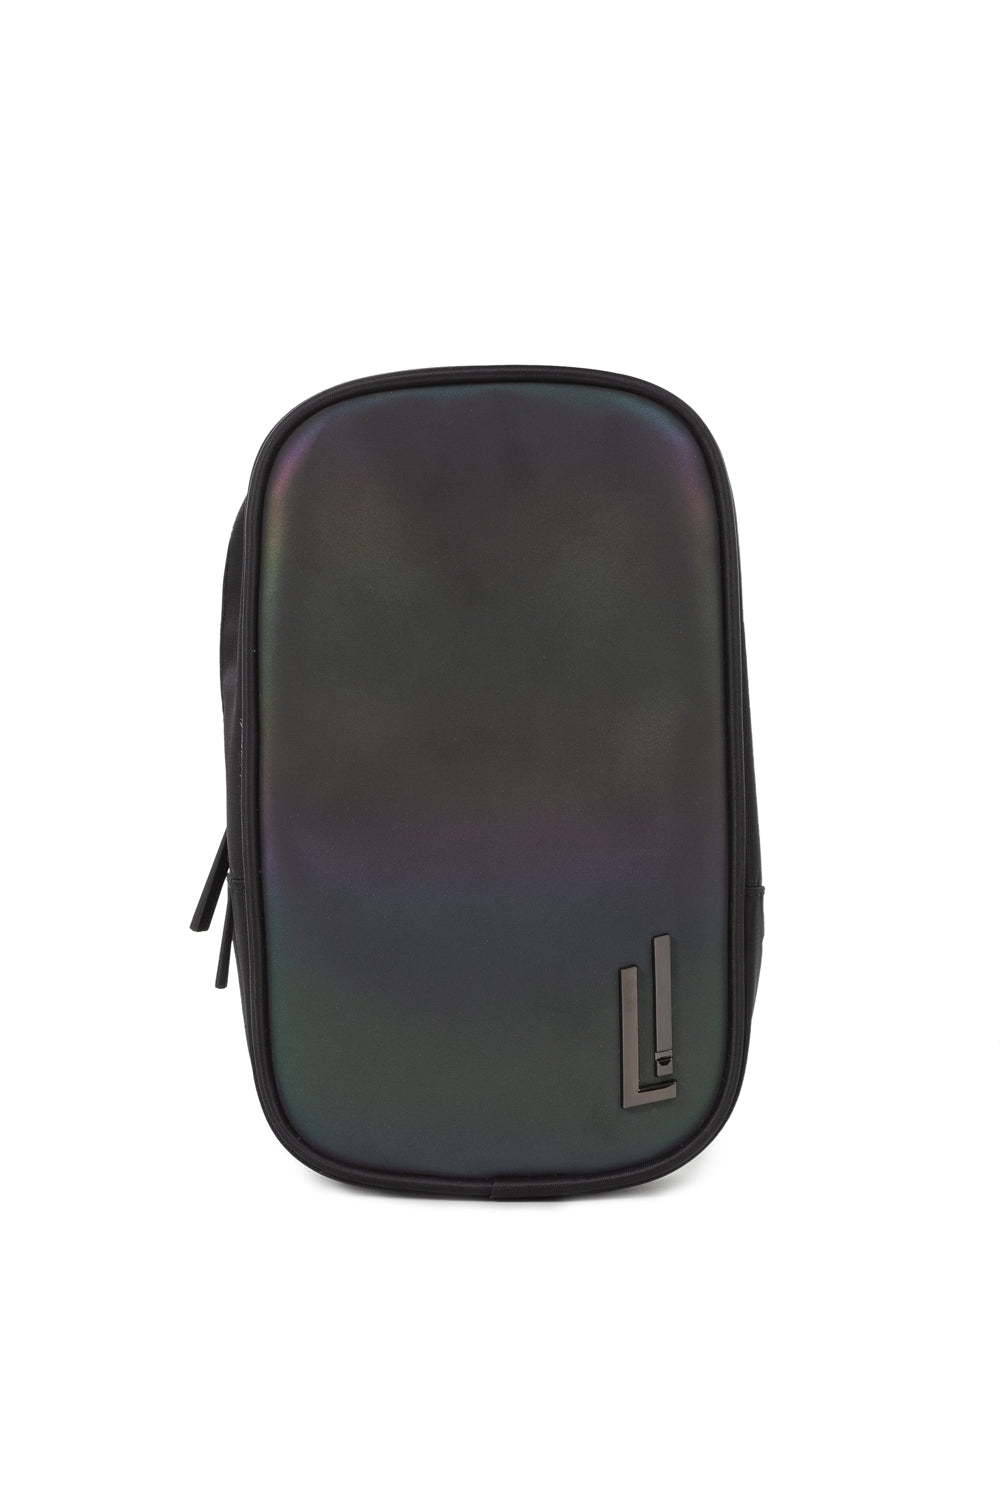 Hologram Cross Bag 1